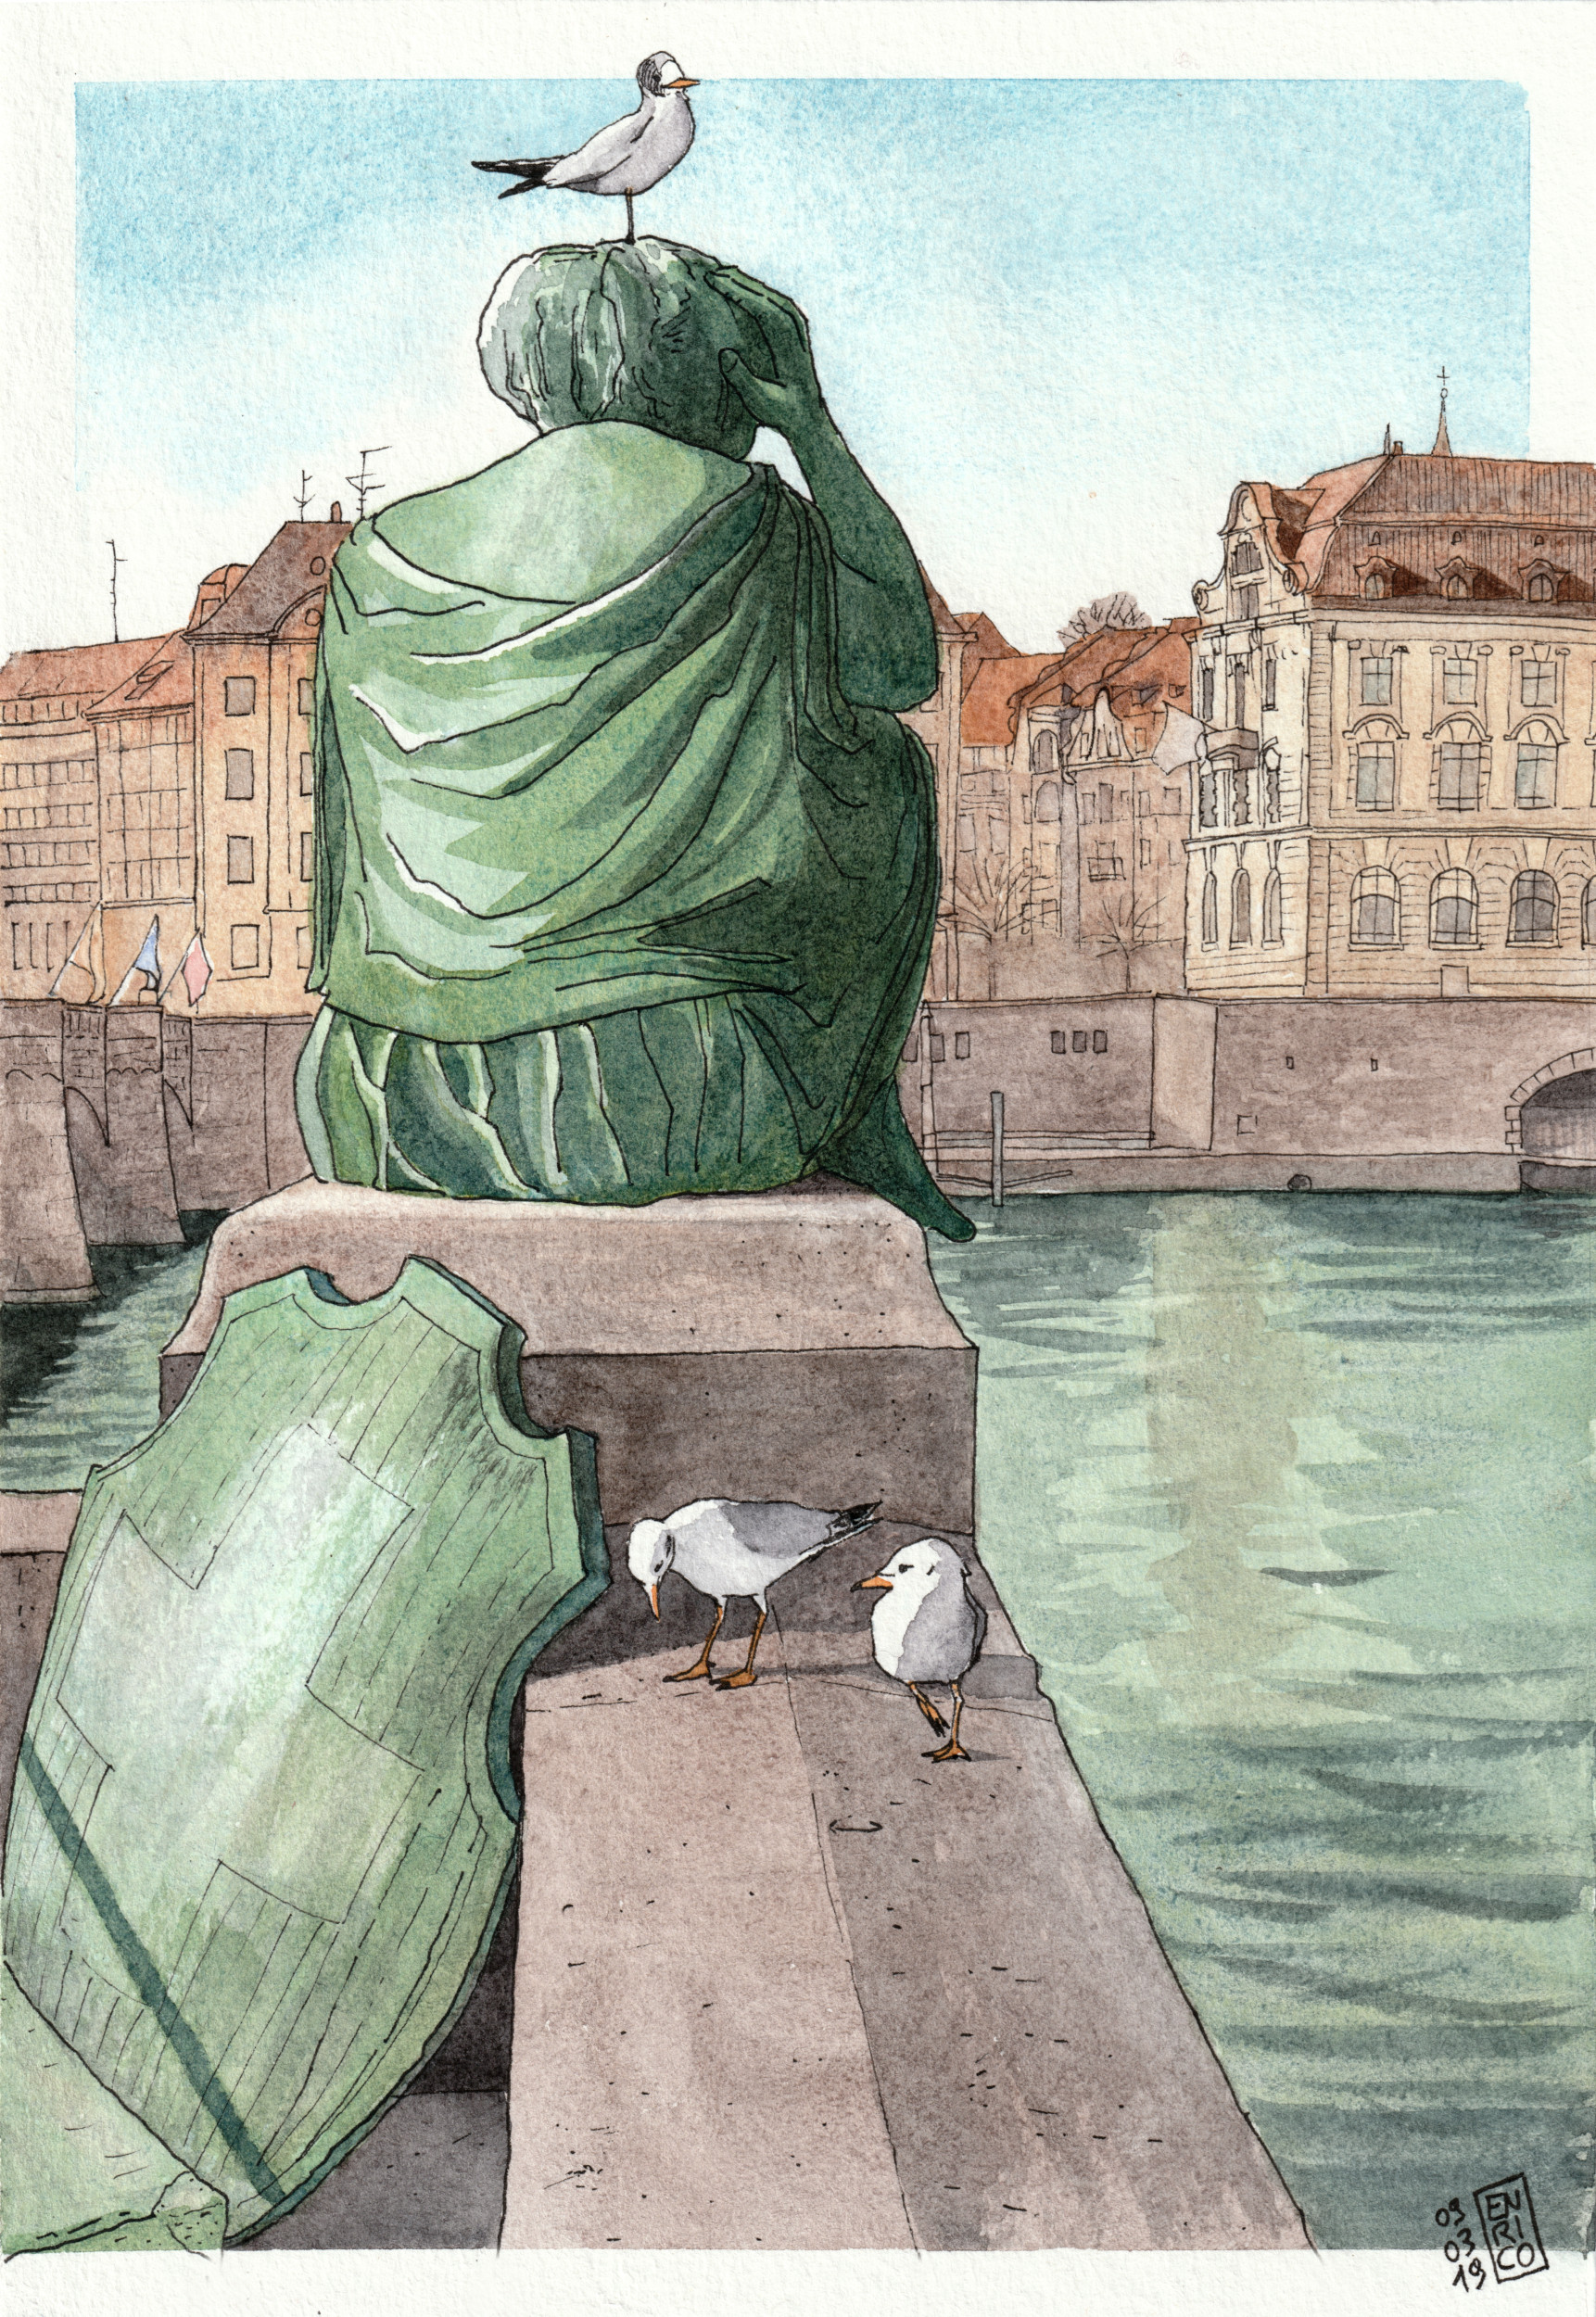 The view of the Rhine from the statue of Helvetia, with Les Trois Rois Hotel in the background. This is a bigger format painting I did for a friend of mine that lives in NY and misses Basel.